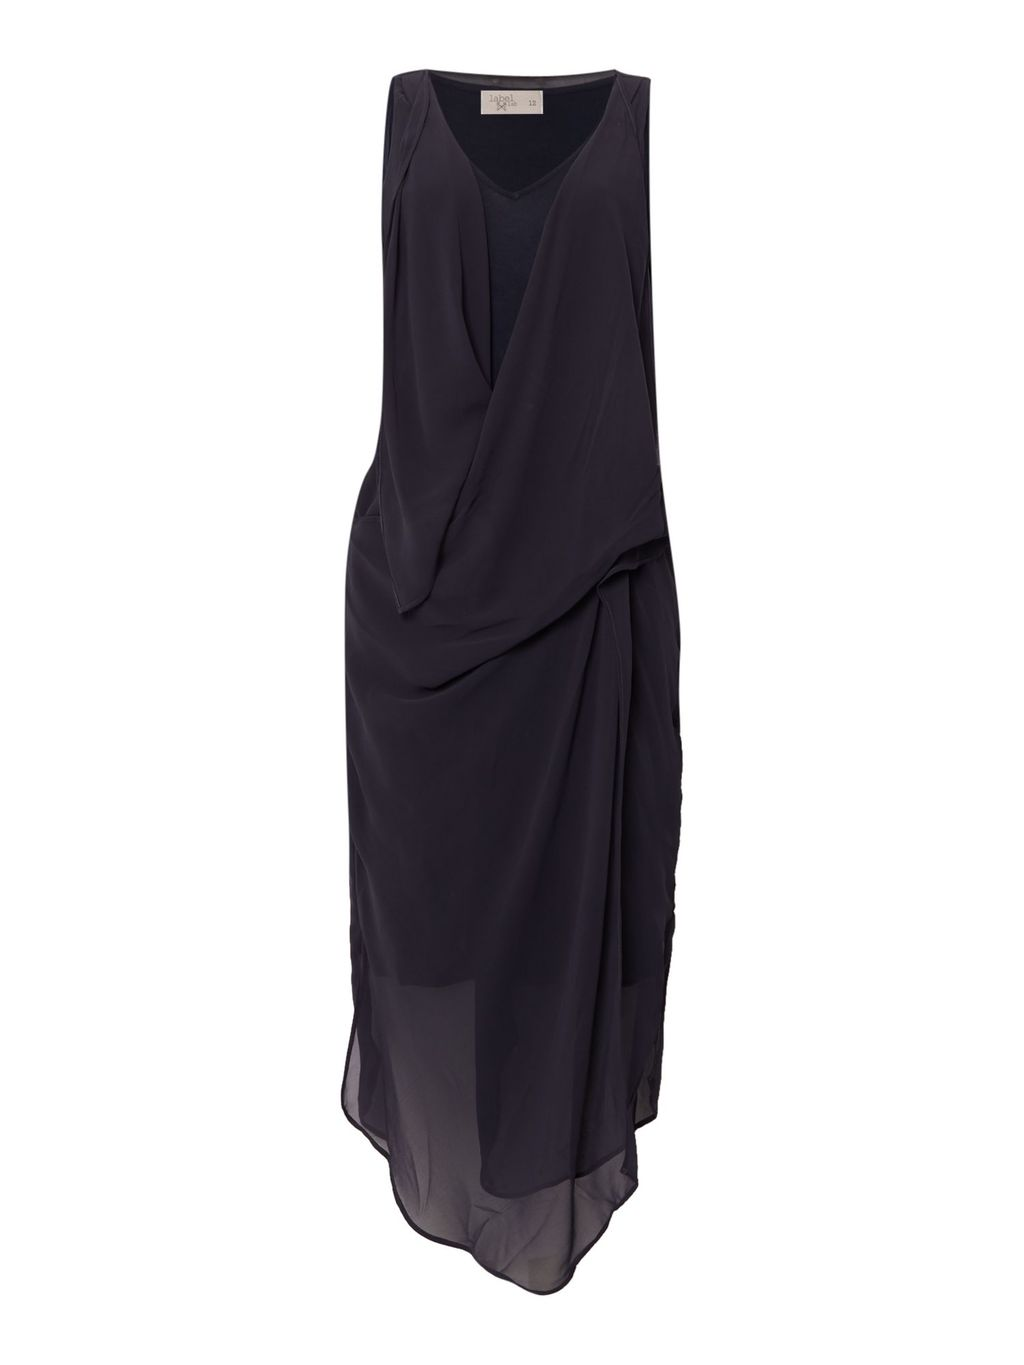 Chiffon Layered Drape Dress, Grey - style: shift; neckline: low v-neck; pattern: plain; sleeve style: sleeveless; waist detail: flattering waist detail; predominant colour: charcoal; occasions: evening, occasion; length: just above the knee; fit: body skimming; fibres: viscose/rayon - 100%; hip detail: subtle/flattering hip detail; sleeve length: sleeveless; texture group: sheer fabrics/chiffon/organza etc.; pattern type: fabric; season: s/s 2016; wardrobe: event